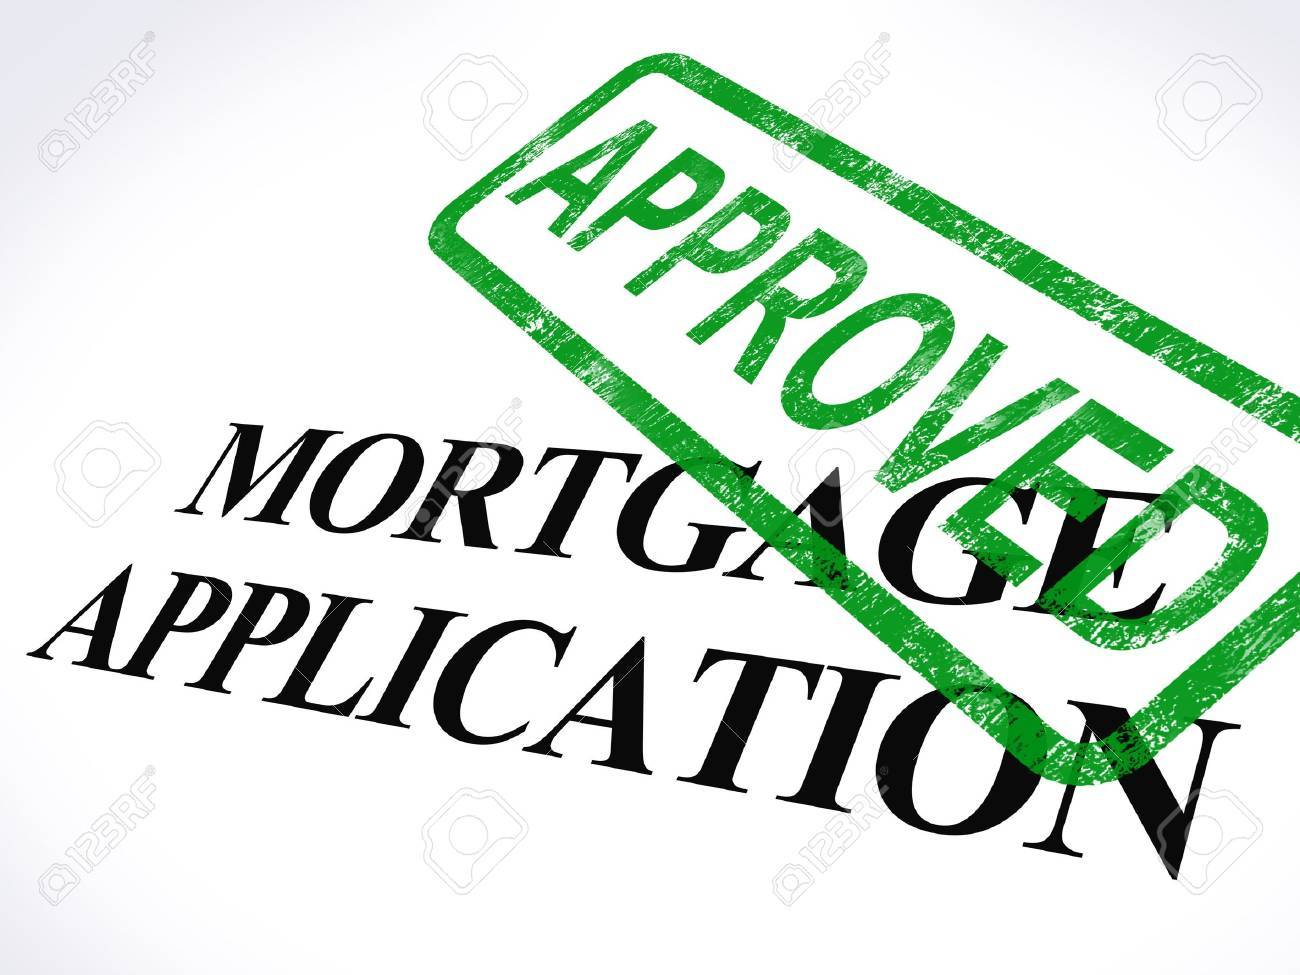 Image result for images of mortgage approval